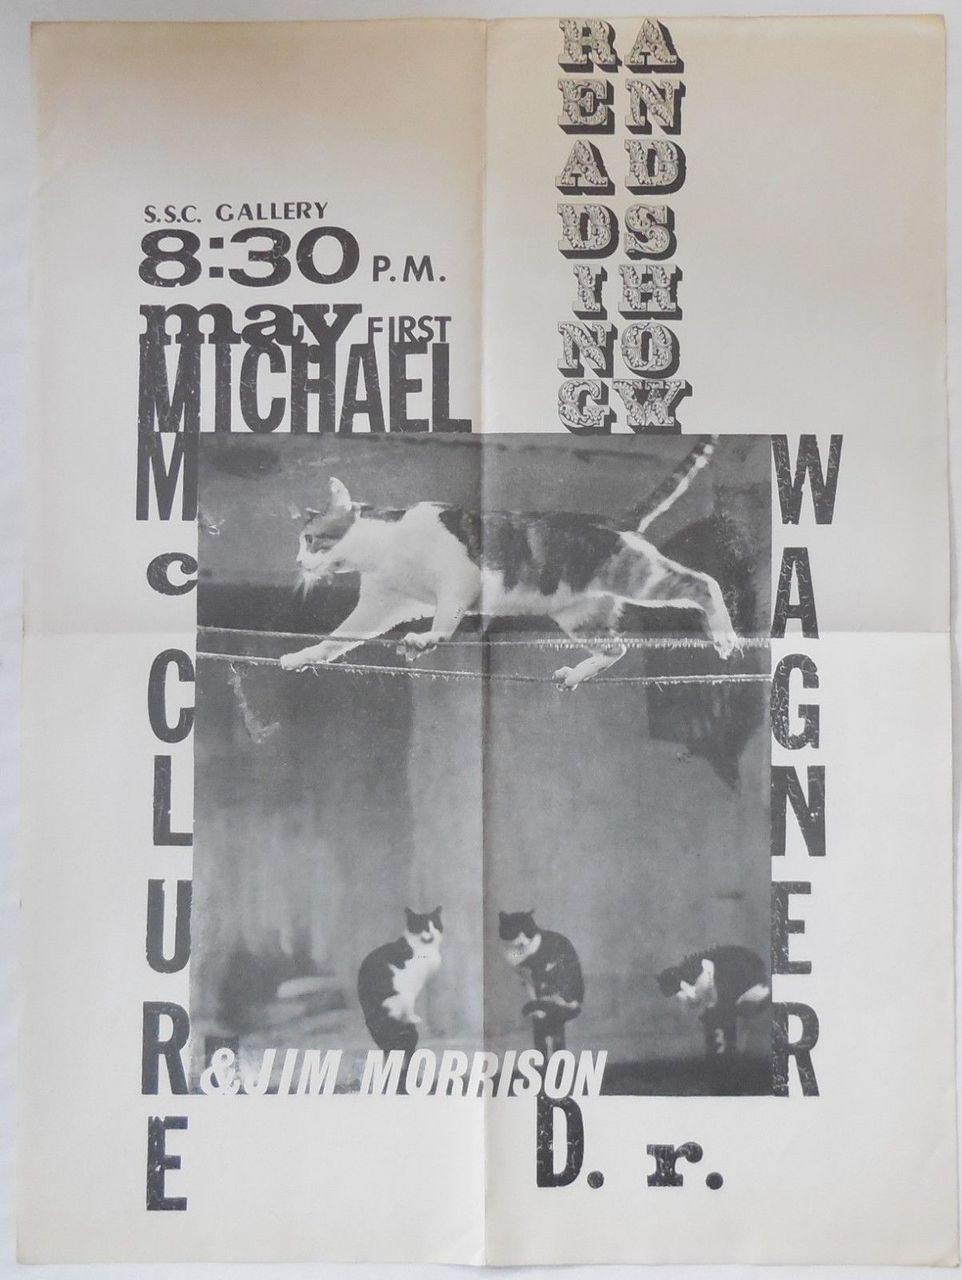 ORIGINAL OFFSET POSTER: Jim Morrison, Michael McClure, D.R. Wagner - May 1, 1969 Reading & Show